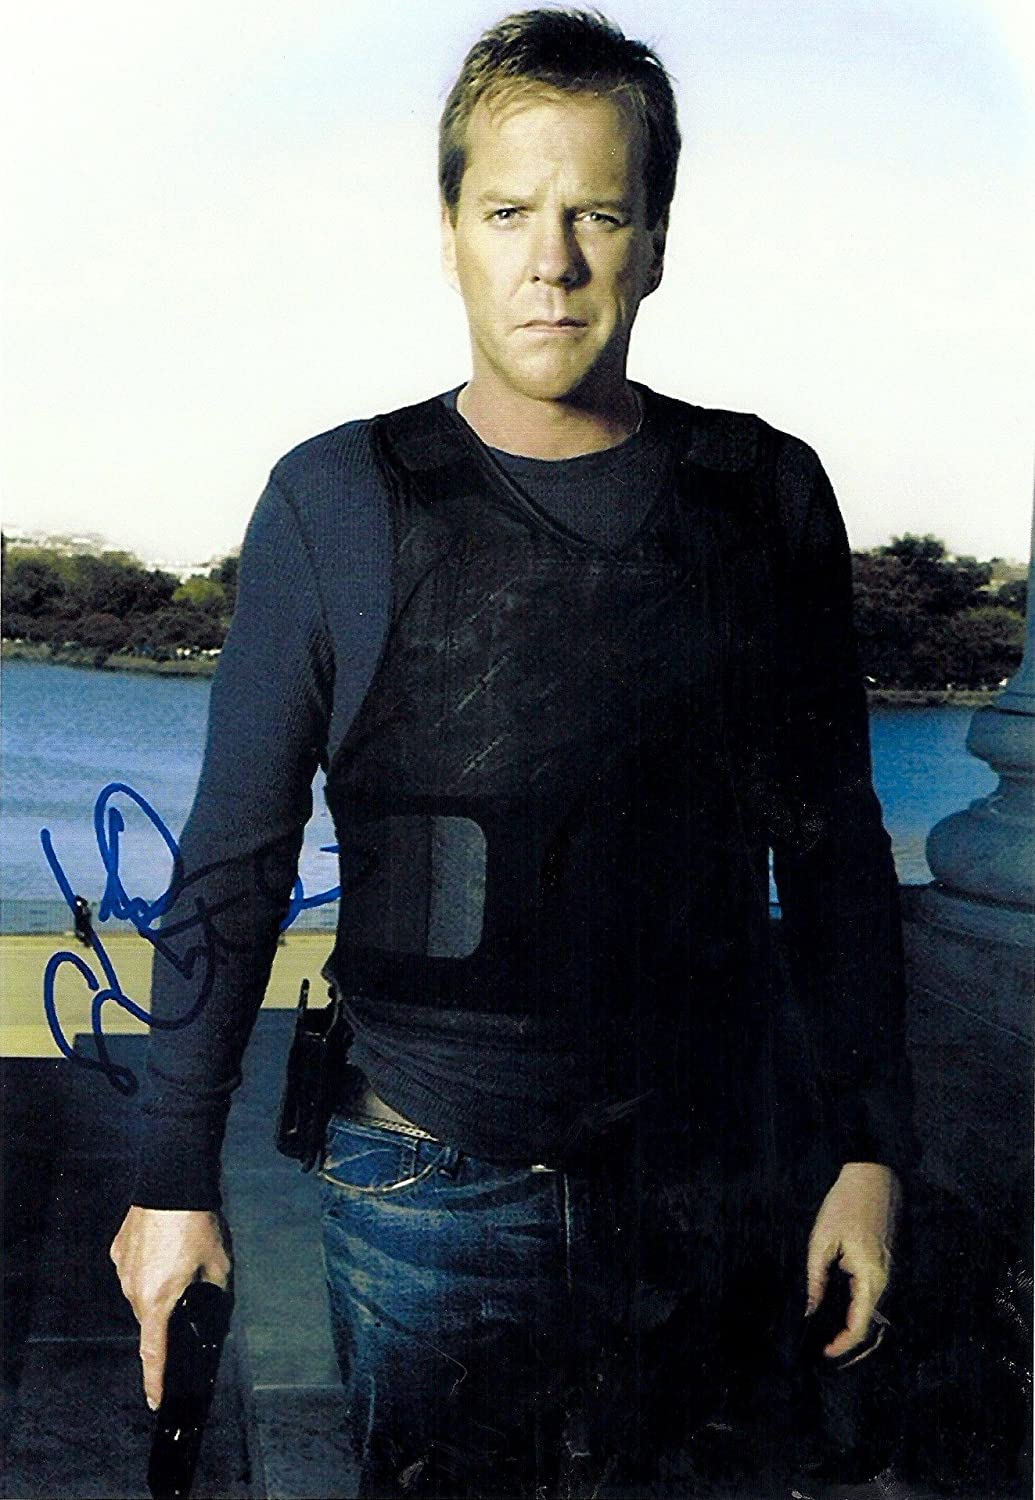 Kiefer Sutherland As Jack Bauer in 24 Signed Autographed 8 X 10 Reprint Photo - Mint Condition